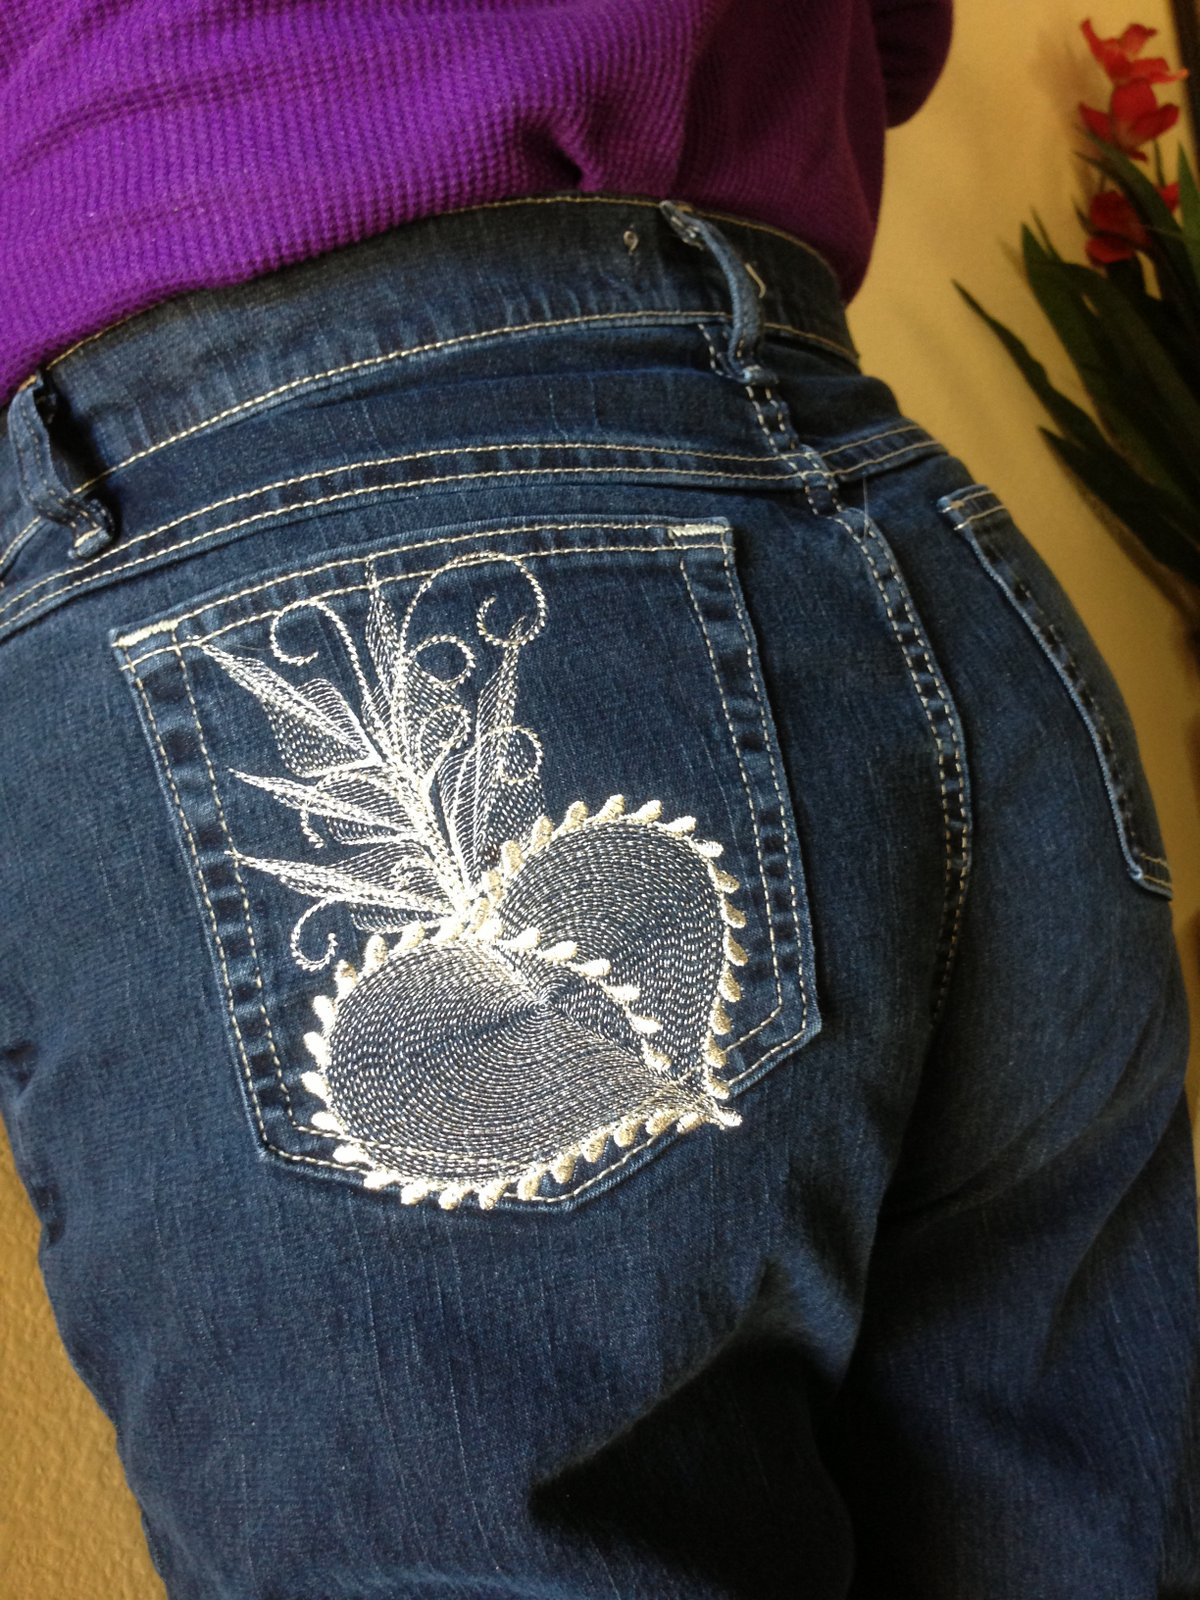 Embroidery it machine on jeans